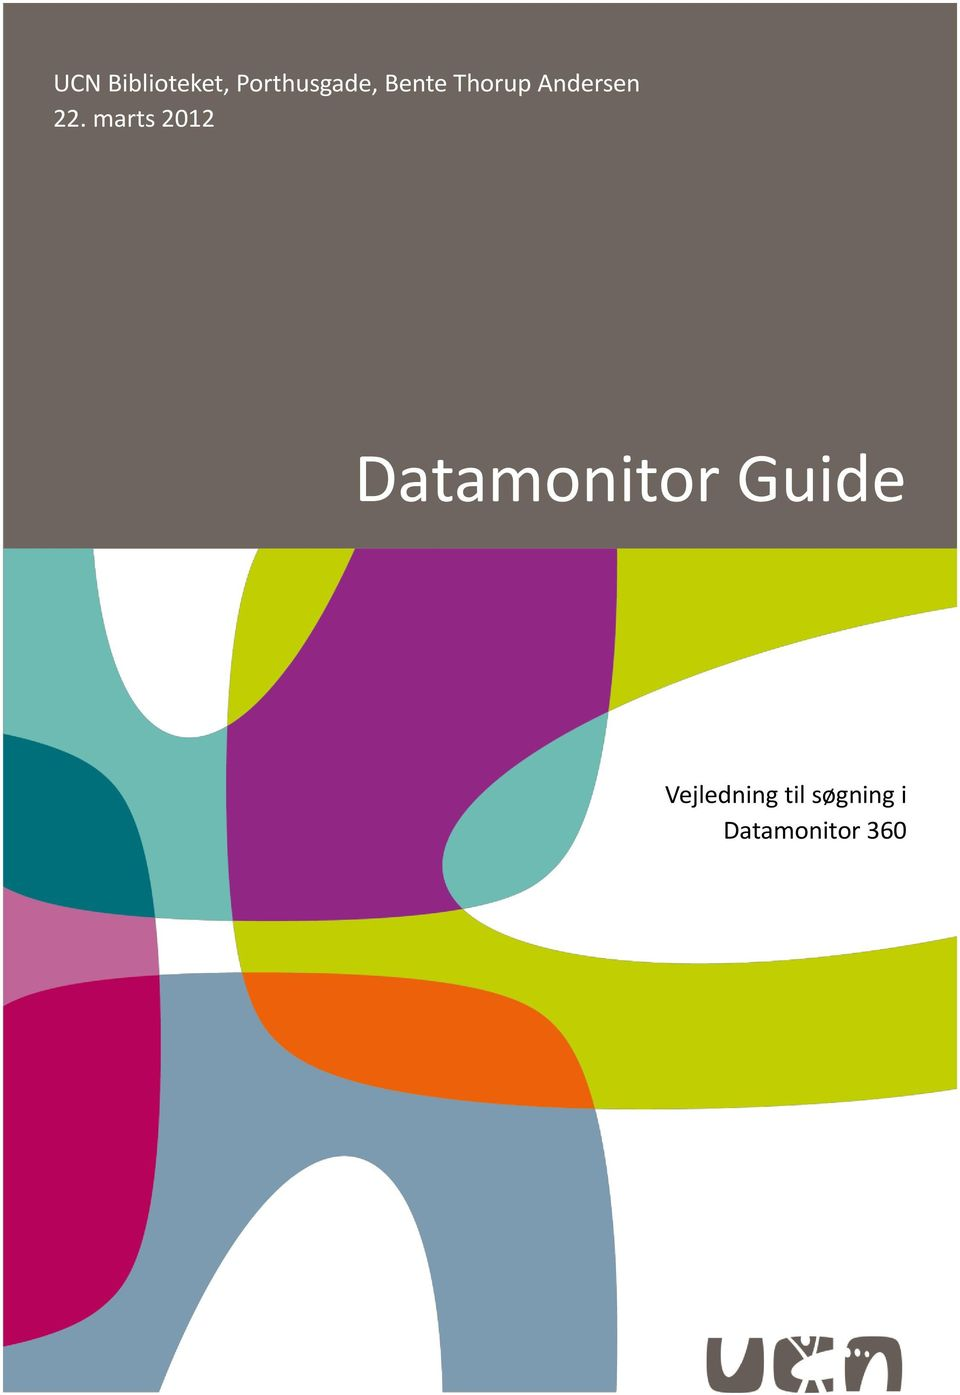 marts 2012 Datamonitor Guide